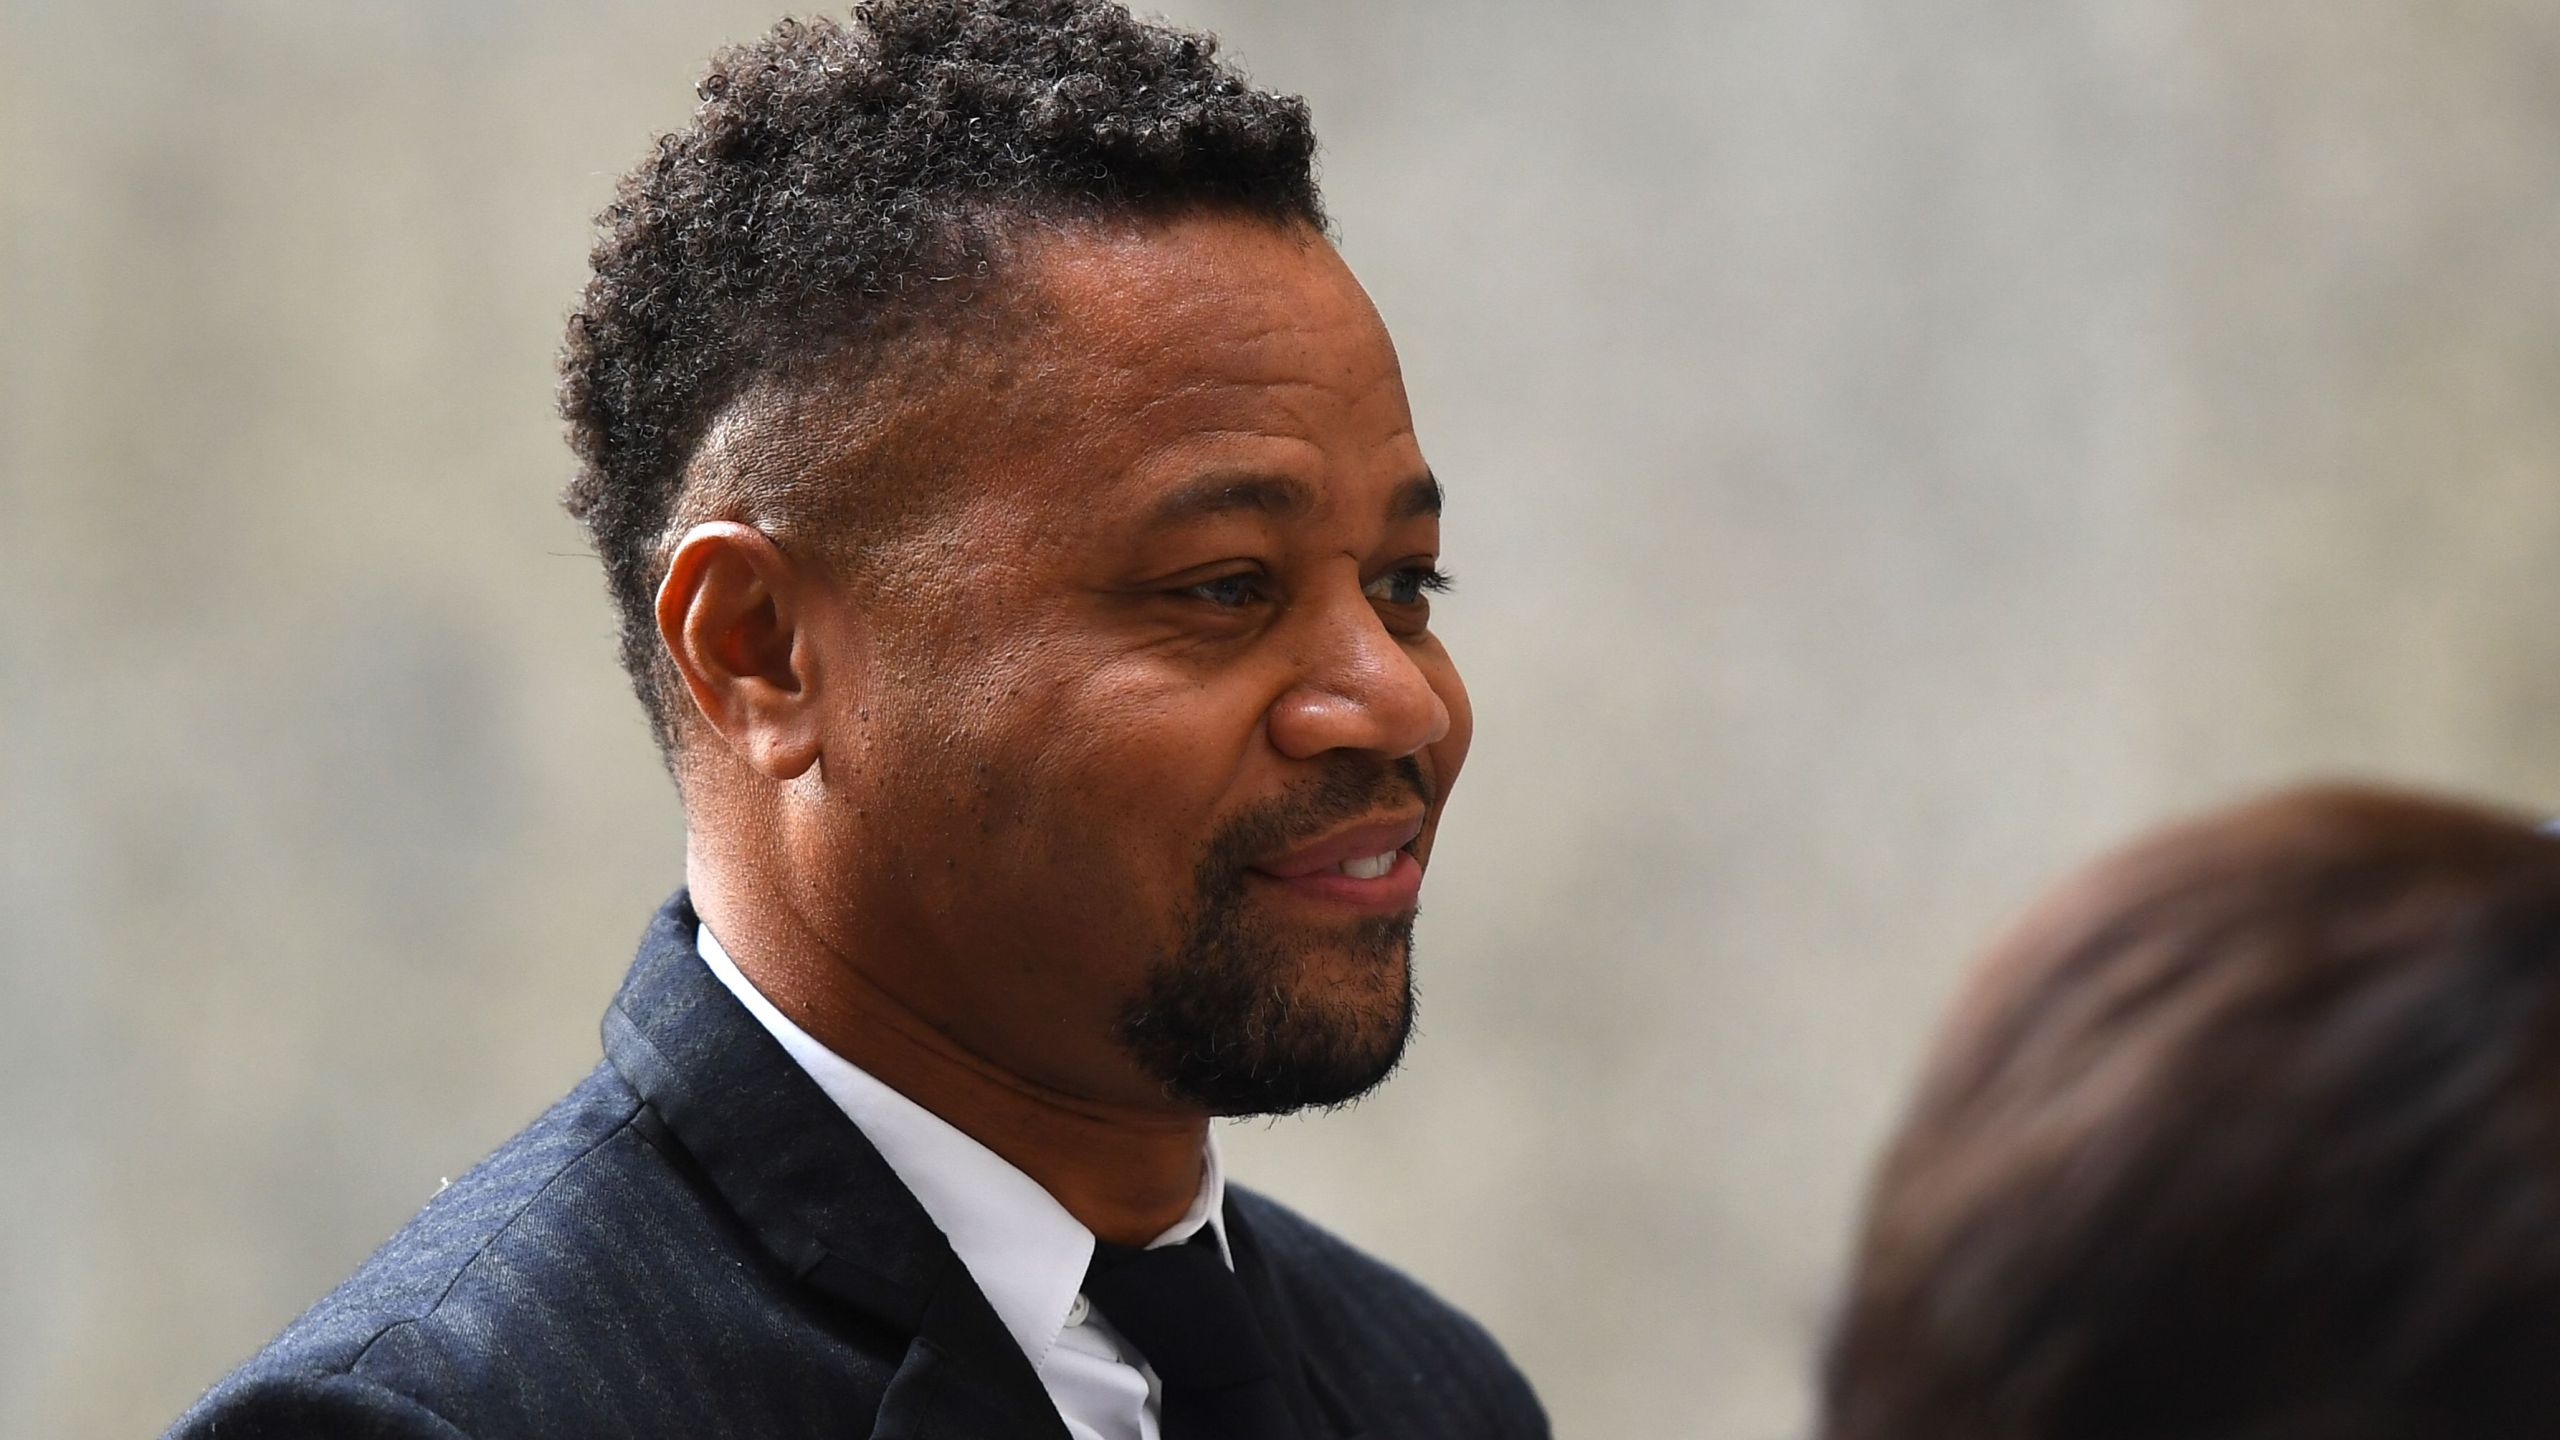 Actor Cuba Gooding Jr., (R rear) arrives for his trial on his sexual assault case on October 10, 2019, in New York City. (Credit: JOHANNES EISELE/AFP via Getty Images)